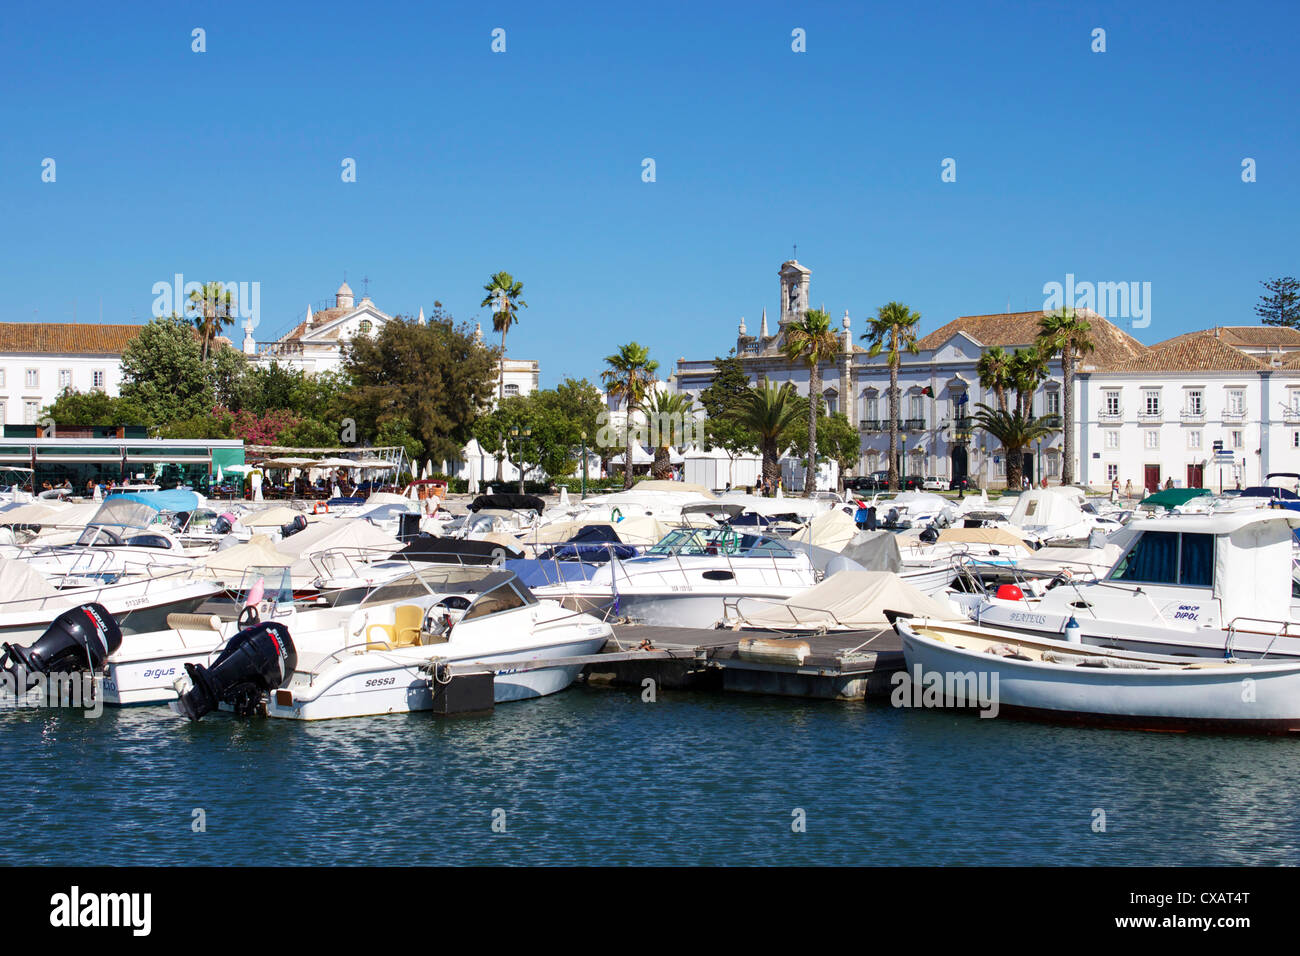 Marina and Old Town, Faro, Algarve, Portugal, Europe - Stock Image